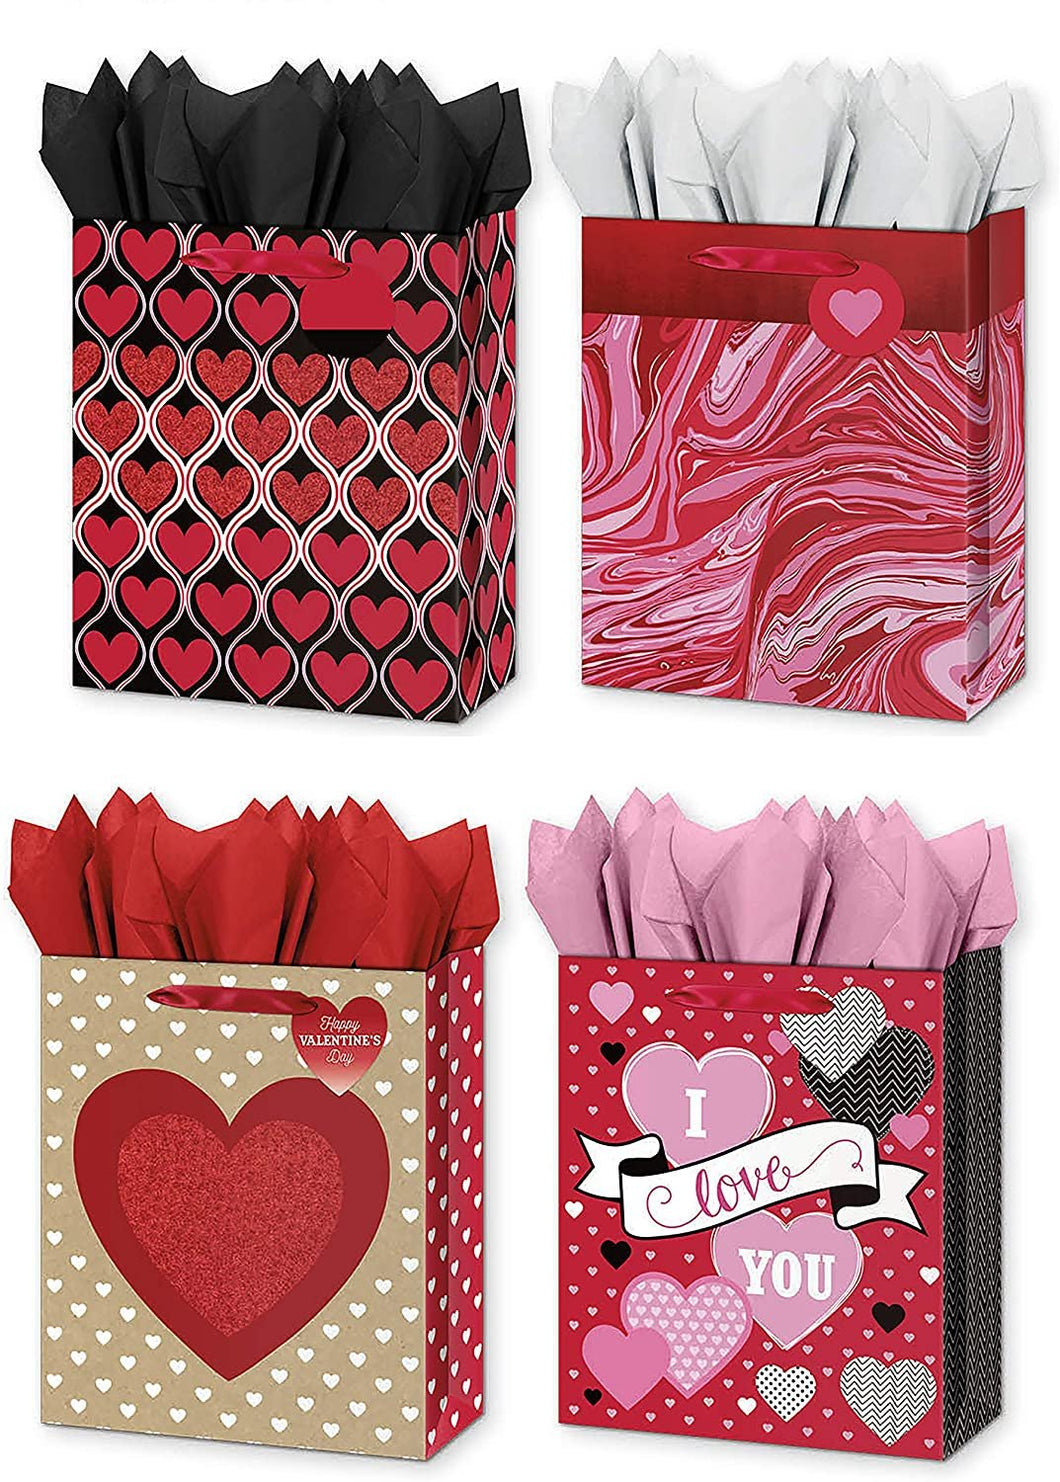 4 Large Gift Bags w/Tissue Paper Included Great for Valentines Day, Anniversary, Mothers Day, Birthday